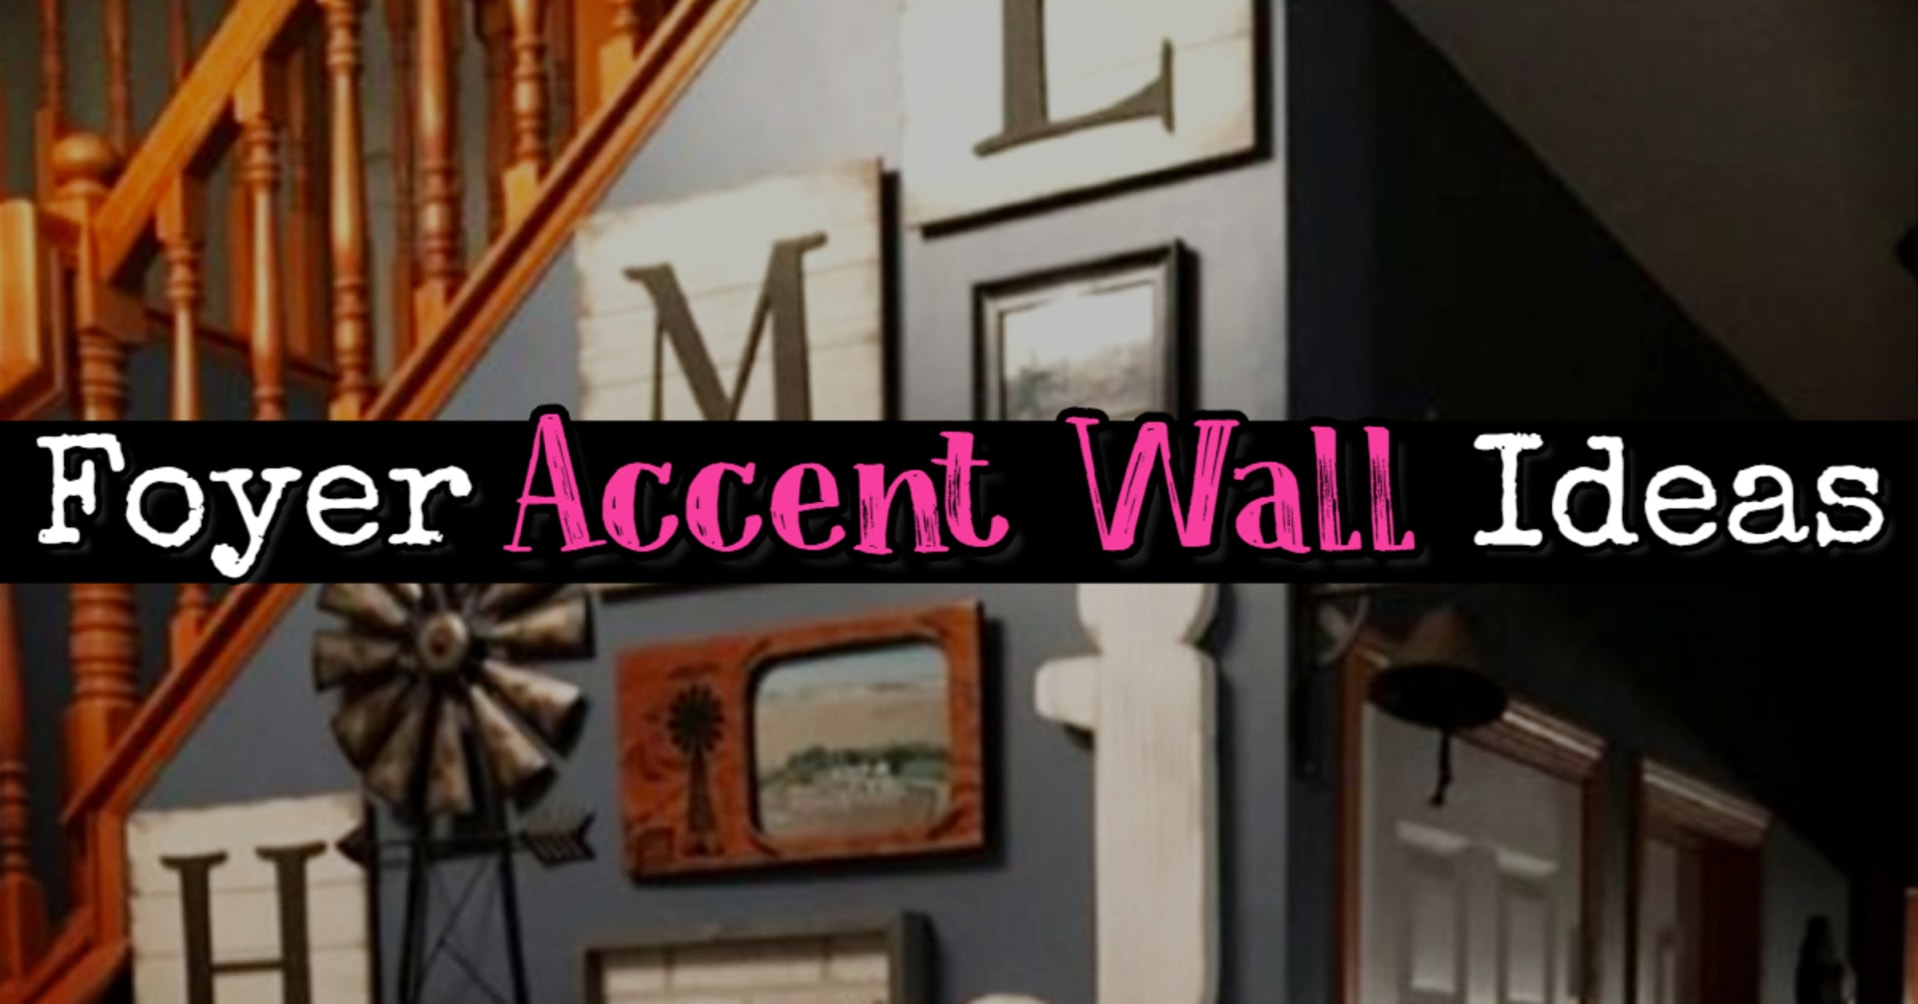 Foyer Accent Wall Ideas - Easy DIY decorating ideas for entry hall wall PICTURES and foyer decor inspiration to copy!